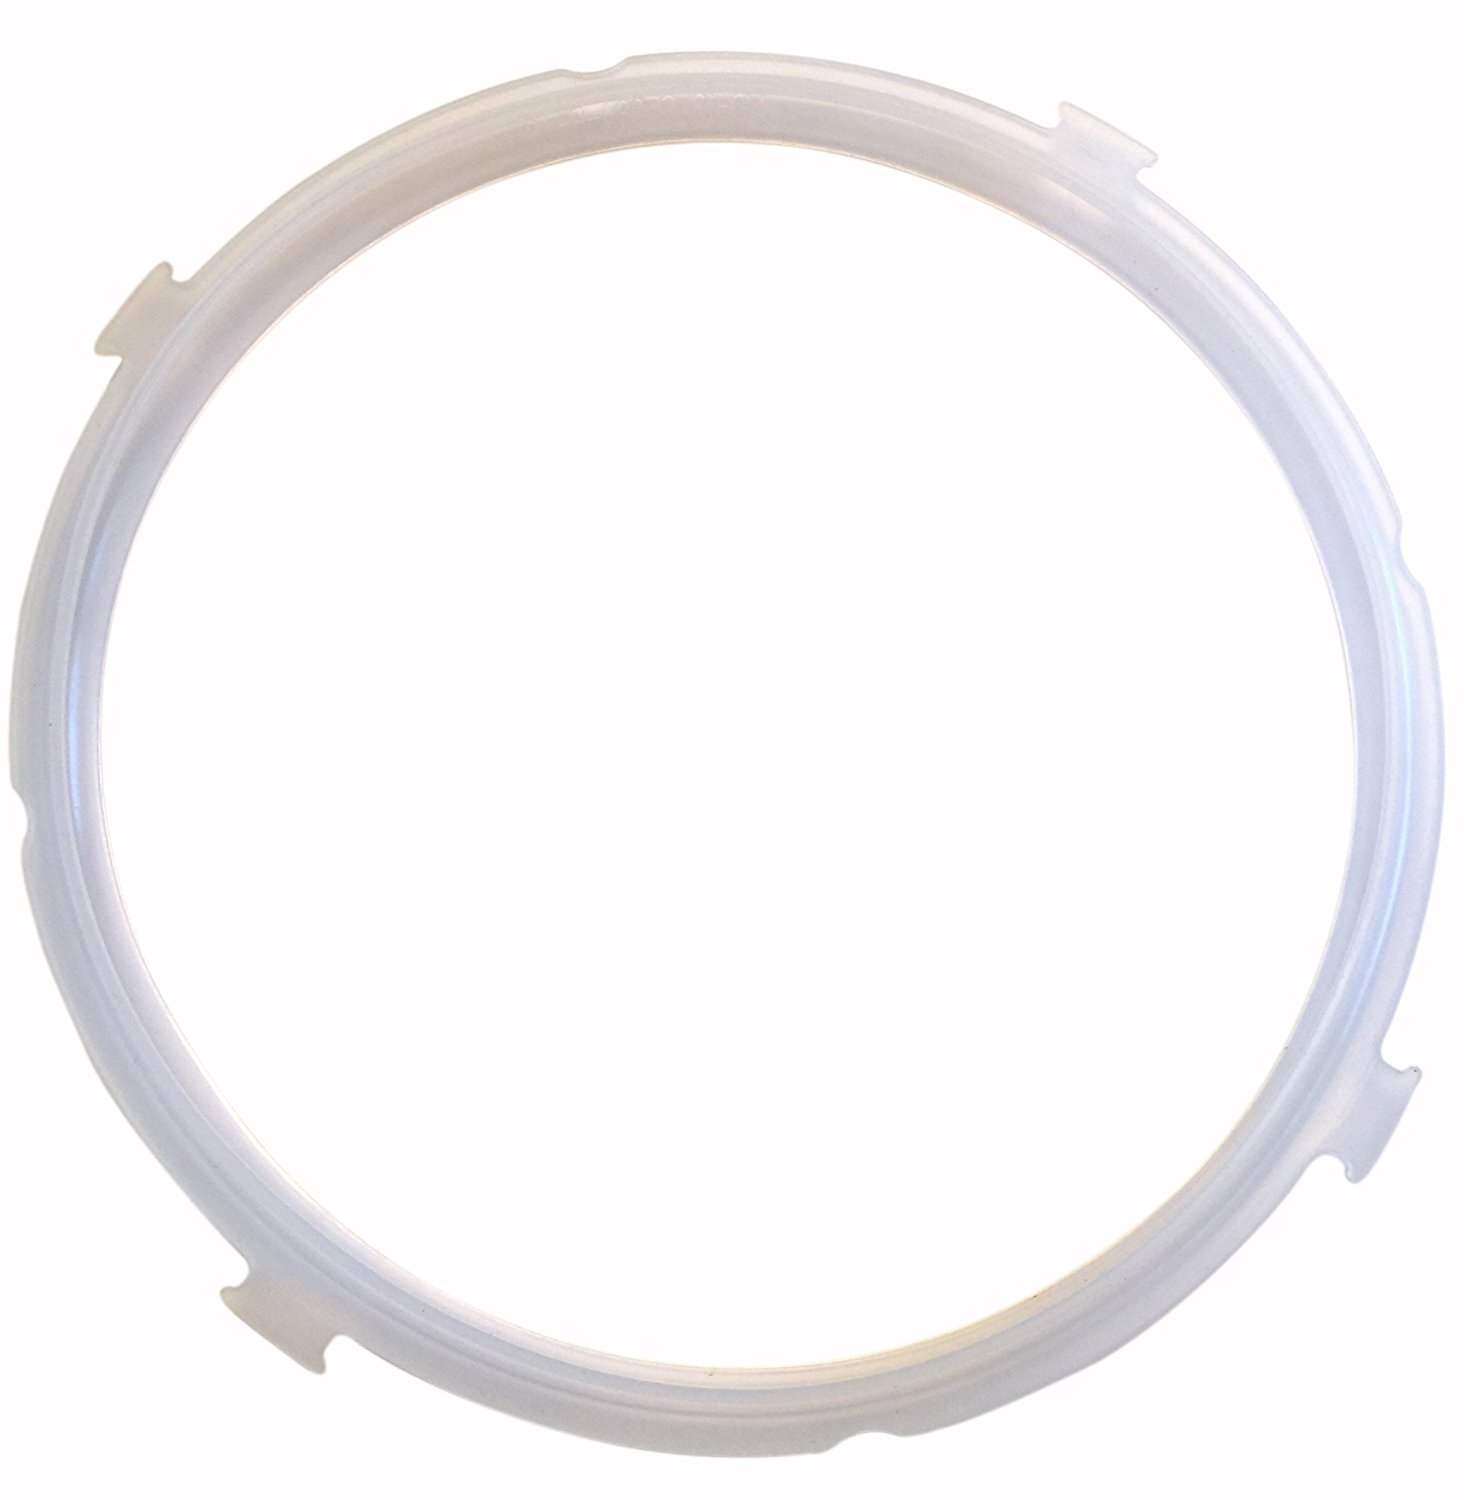 Replacement Pressure Sealing Ring for MIDEA Gourmet Pressure Cooker Model BT100-6l